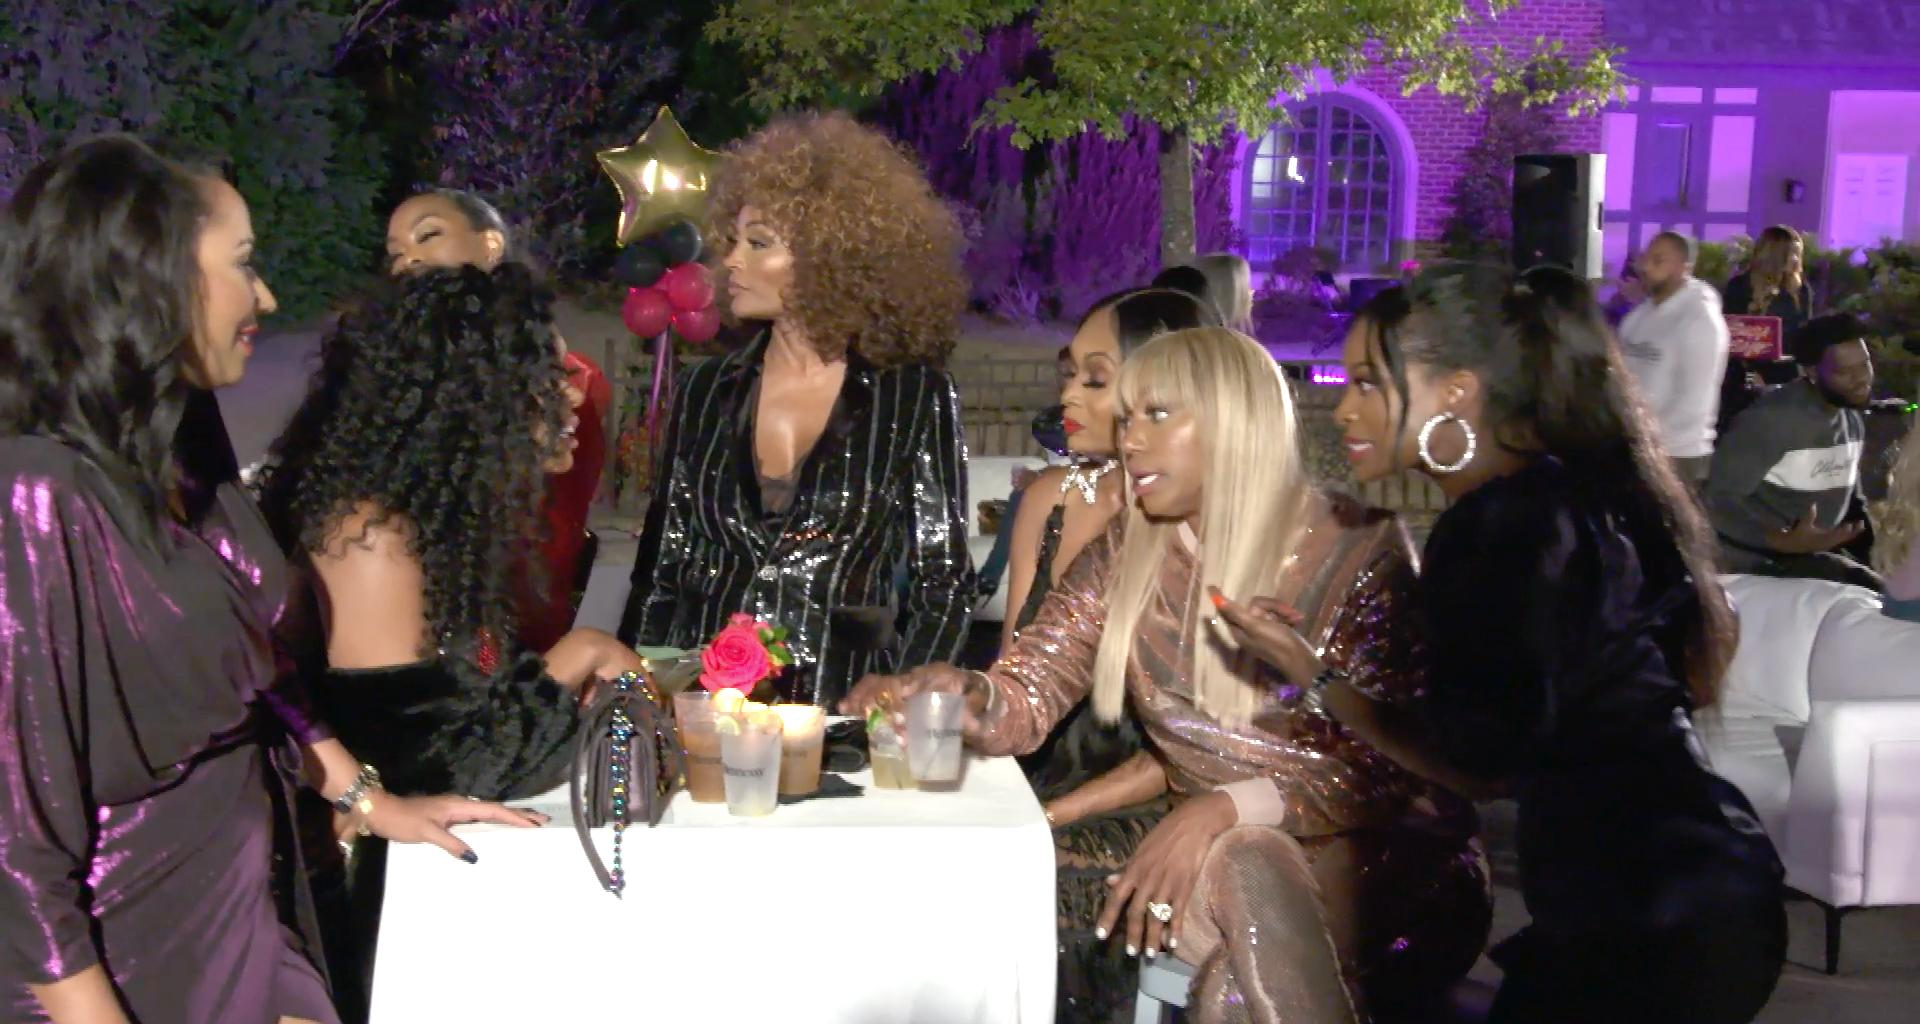 RHOA: Nene Leakes Questions If Brooklyn Daly Is Kenya Moore's Baby -- Says Her Marriage To Marc Daly Was An Agreement